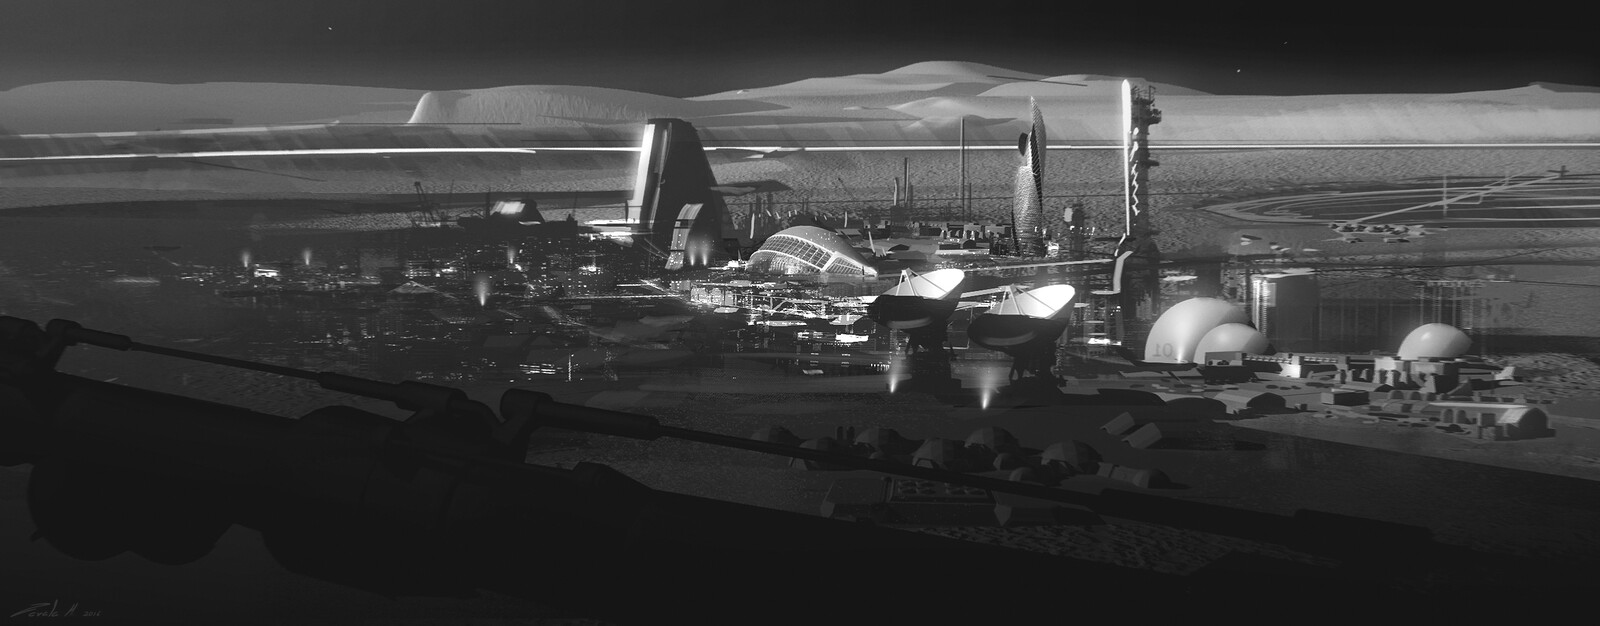 Lunar Hub sketch. Finnian MacManus was the one was responsible of designing the hub. Highly recommend checking his work out!